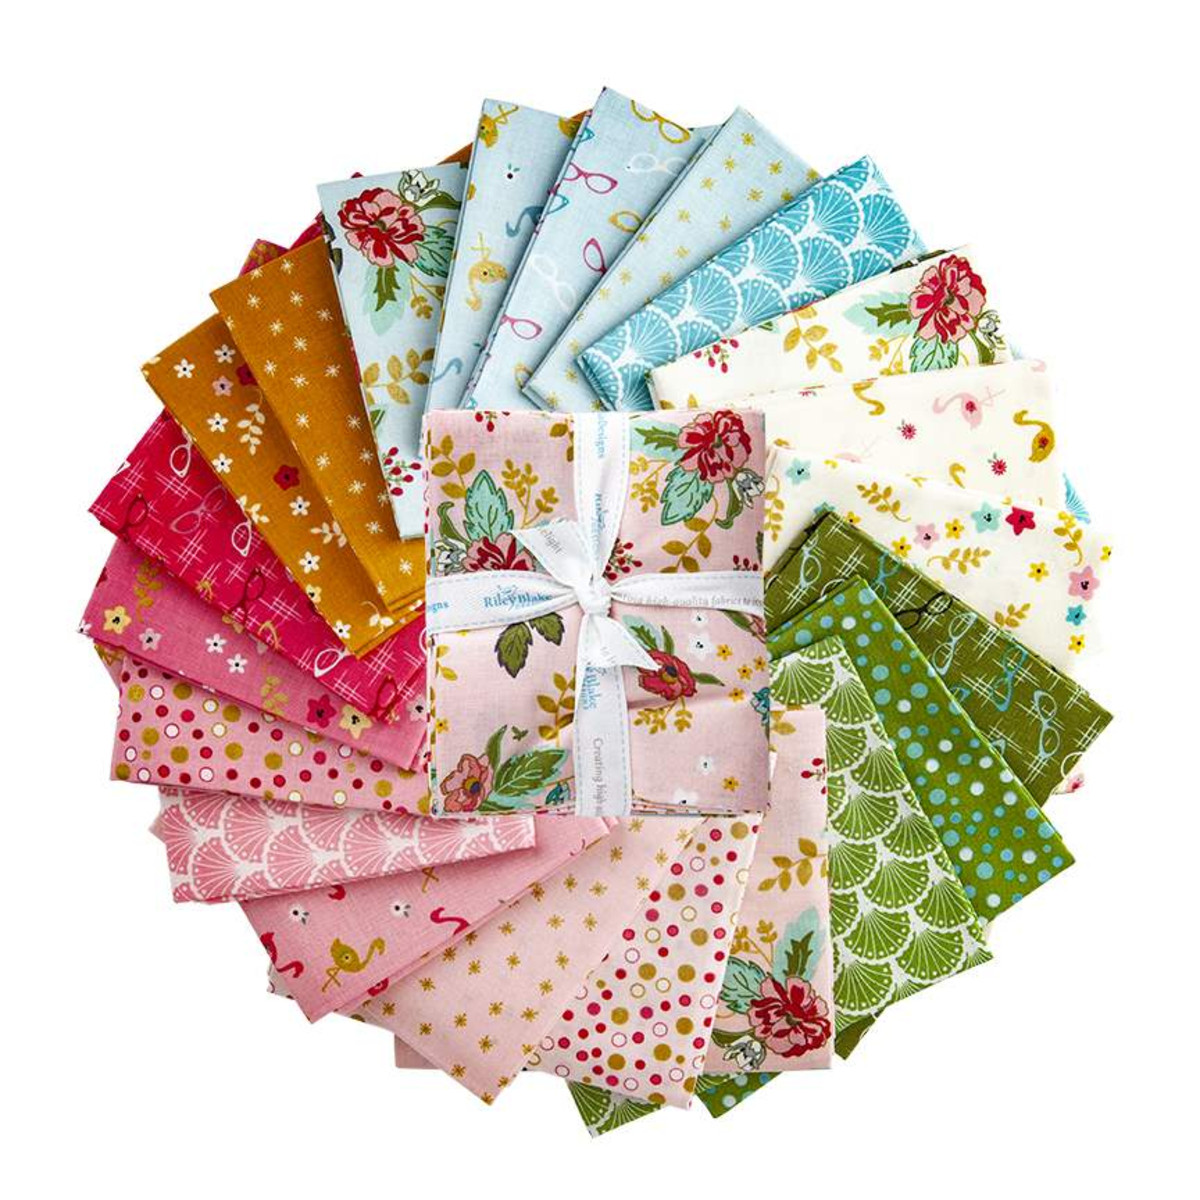 Riley Blake Fat Quarter Bundle - Stardust by Beverly McCullough